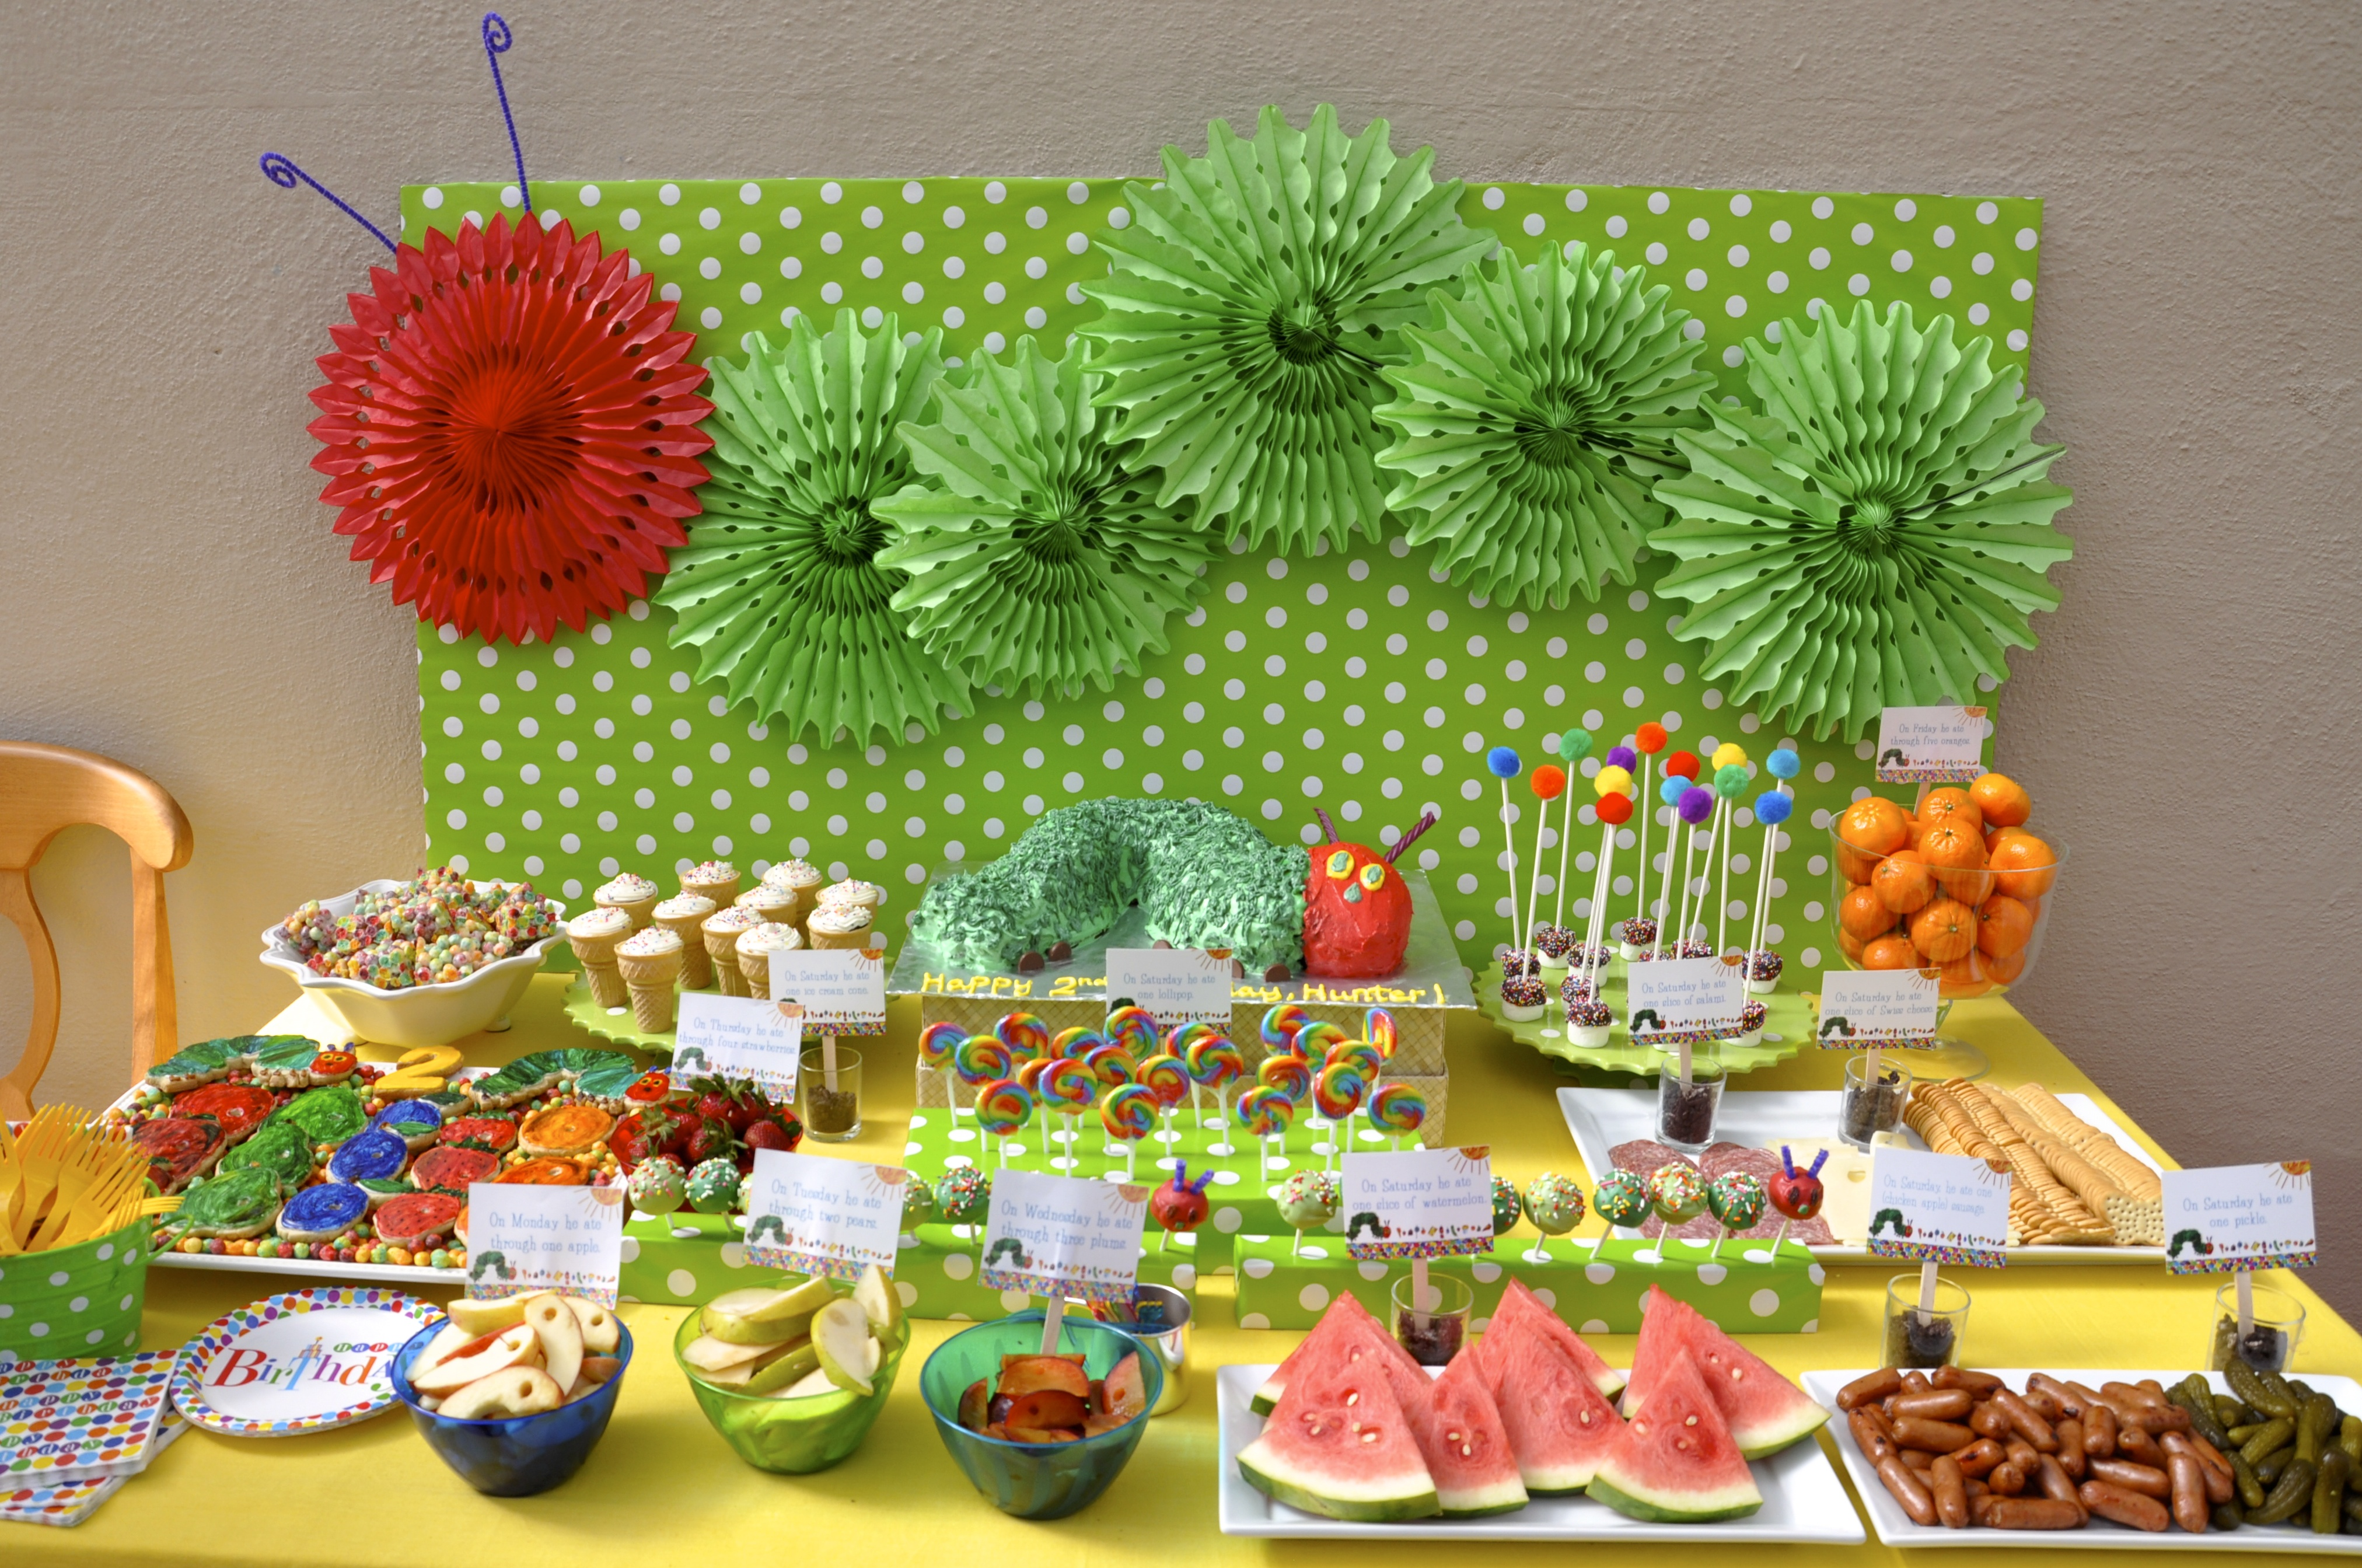 Hungry Caterpillar - Cherry On Top Parties